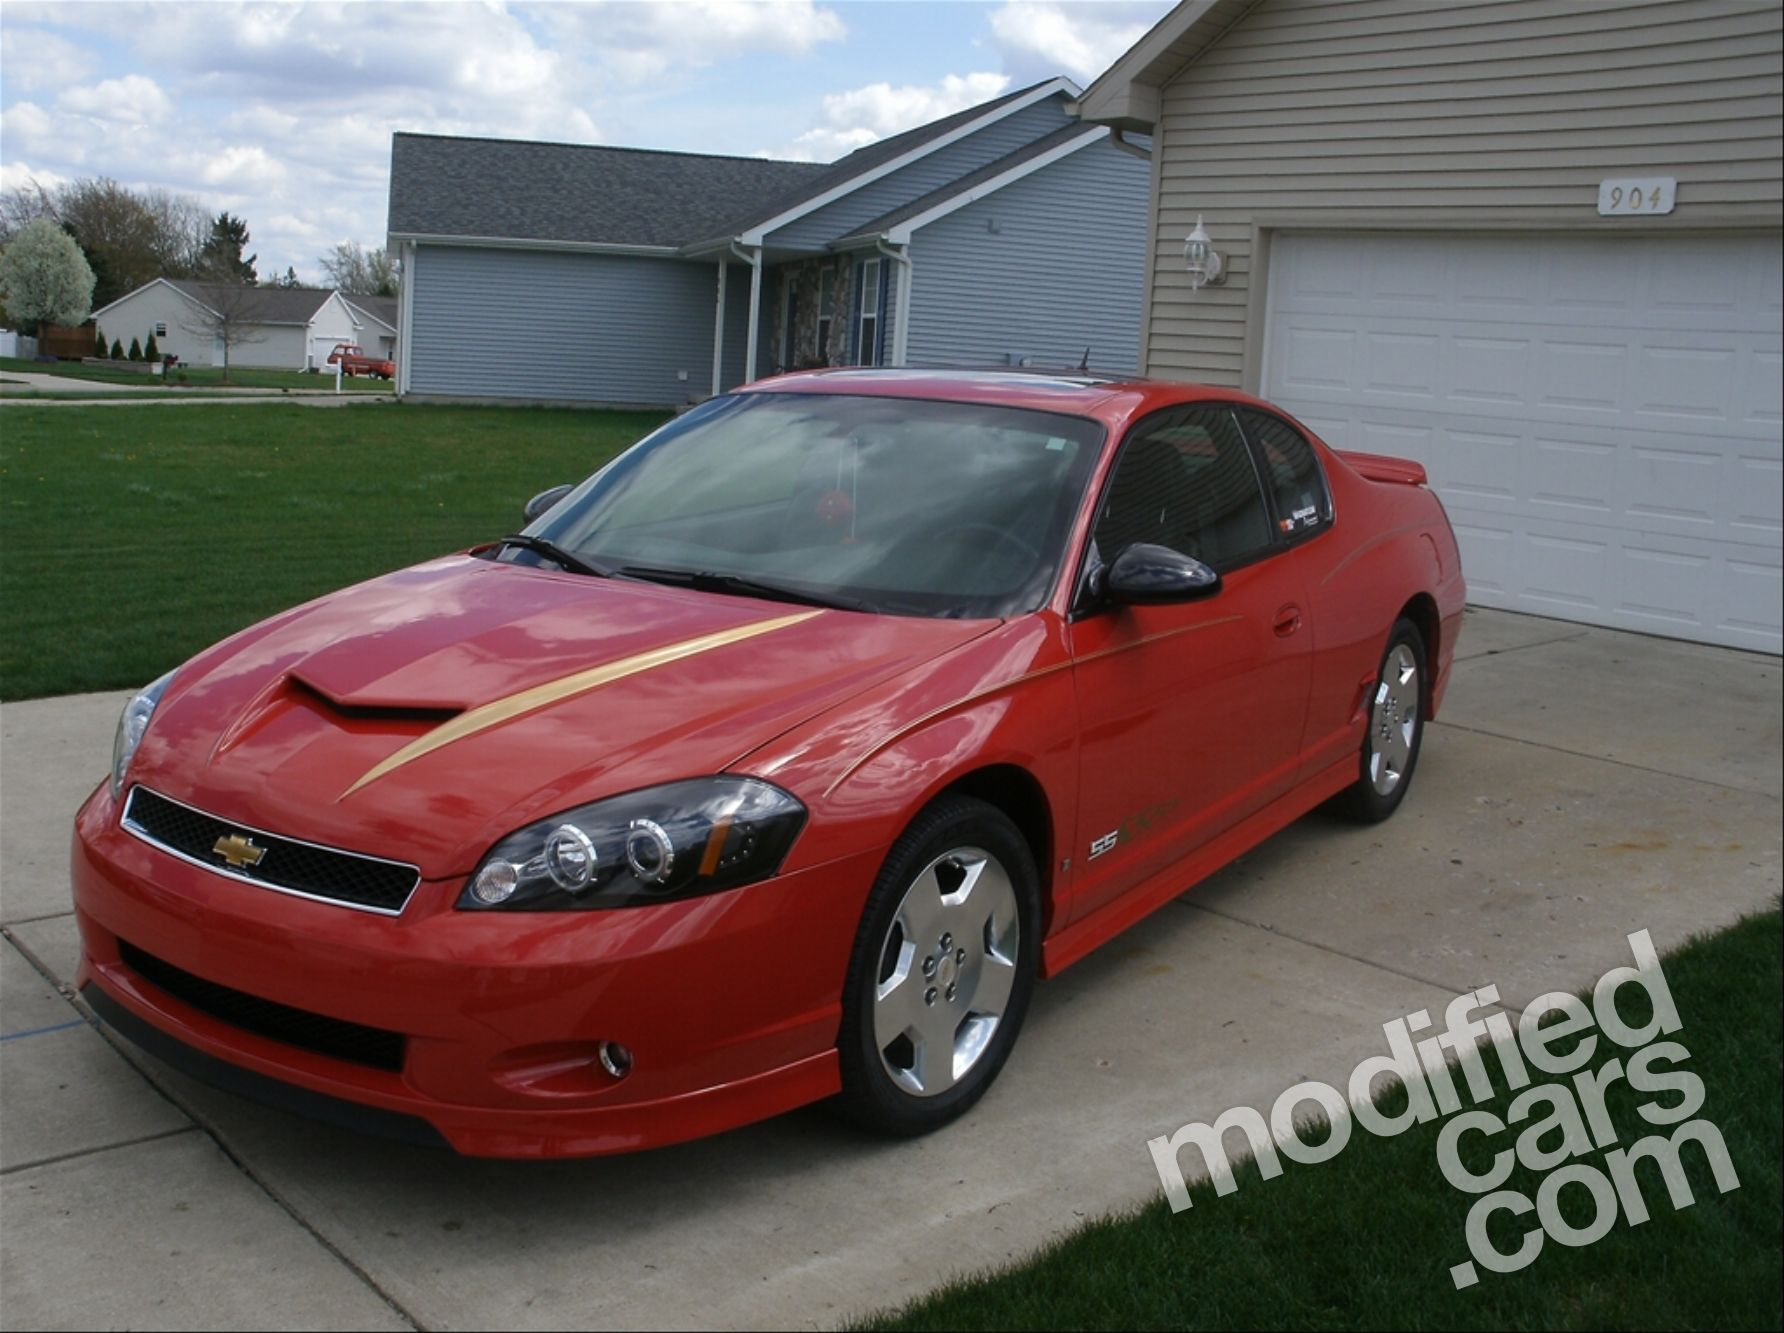 Modified Chevrolet Monte Carlo 2006 Pictures Modified Cars Chevrolet Monte Carlo Monte Carlo Chevy Monte Carlo